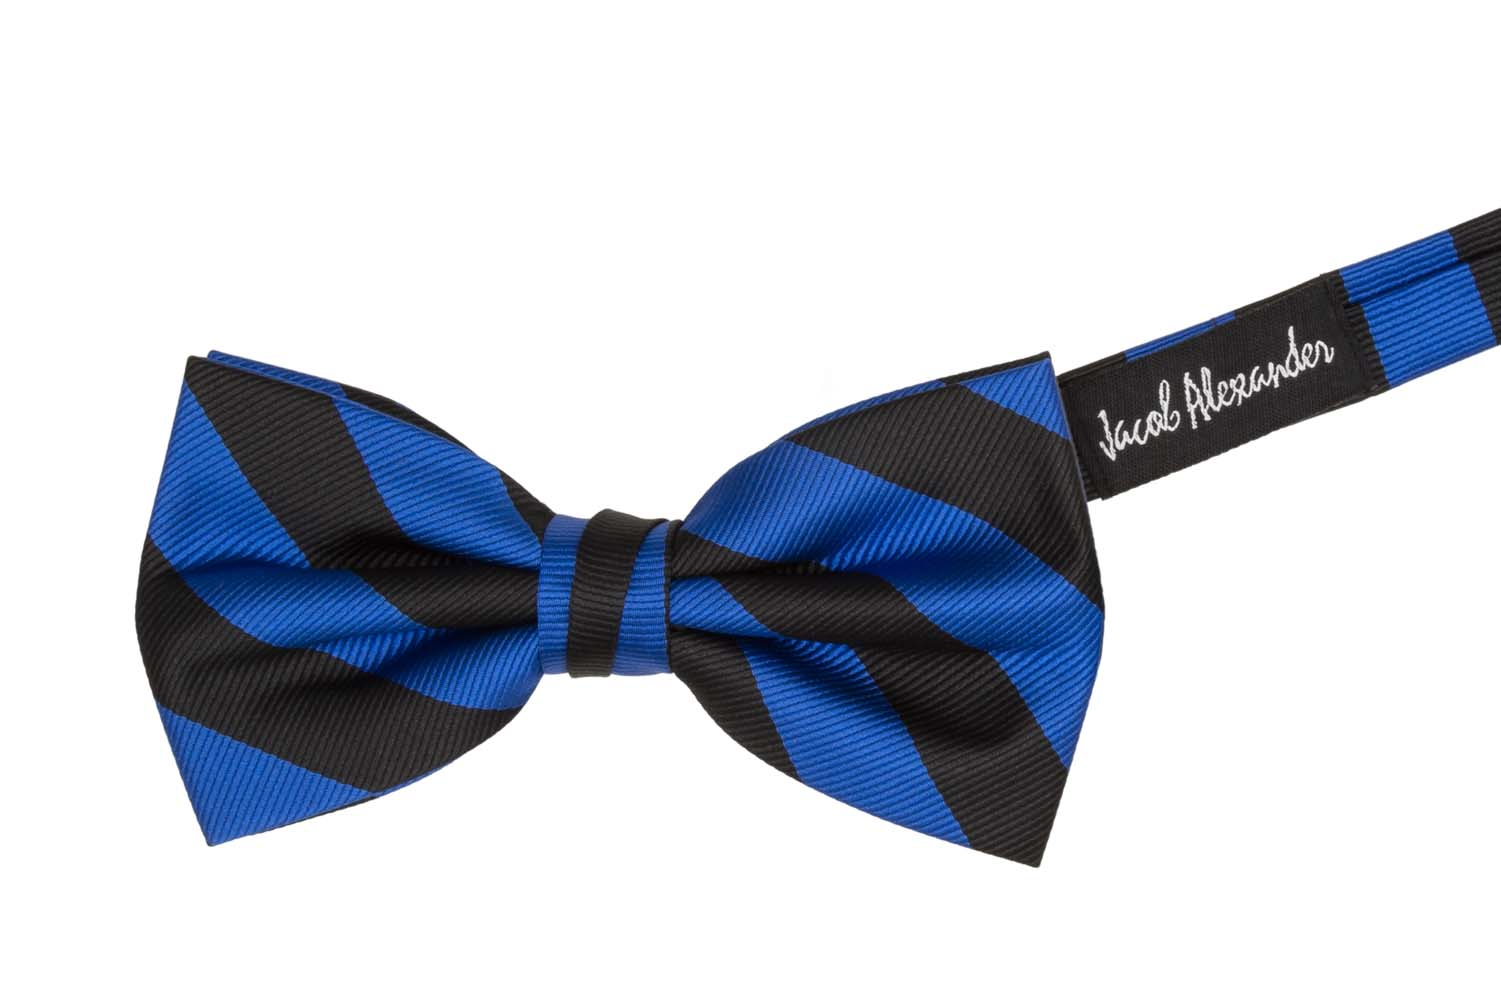 Jacob-Alexander-Stripe-Woven-Men-039-s-College-Striped-Pretied-Bowtie thumbnail 22